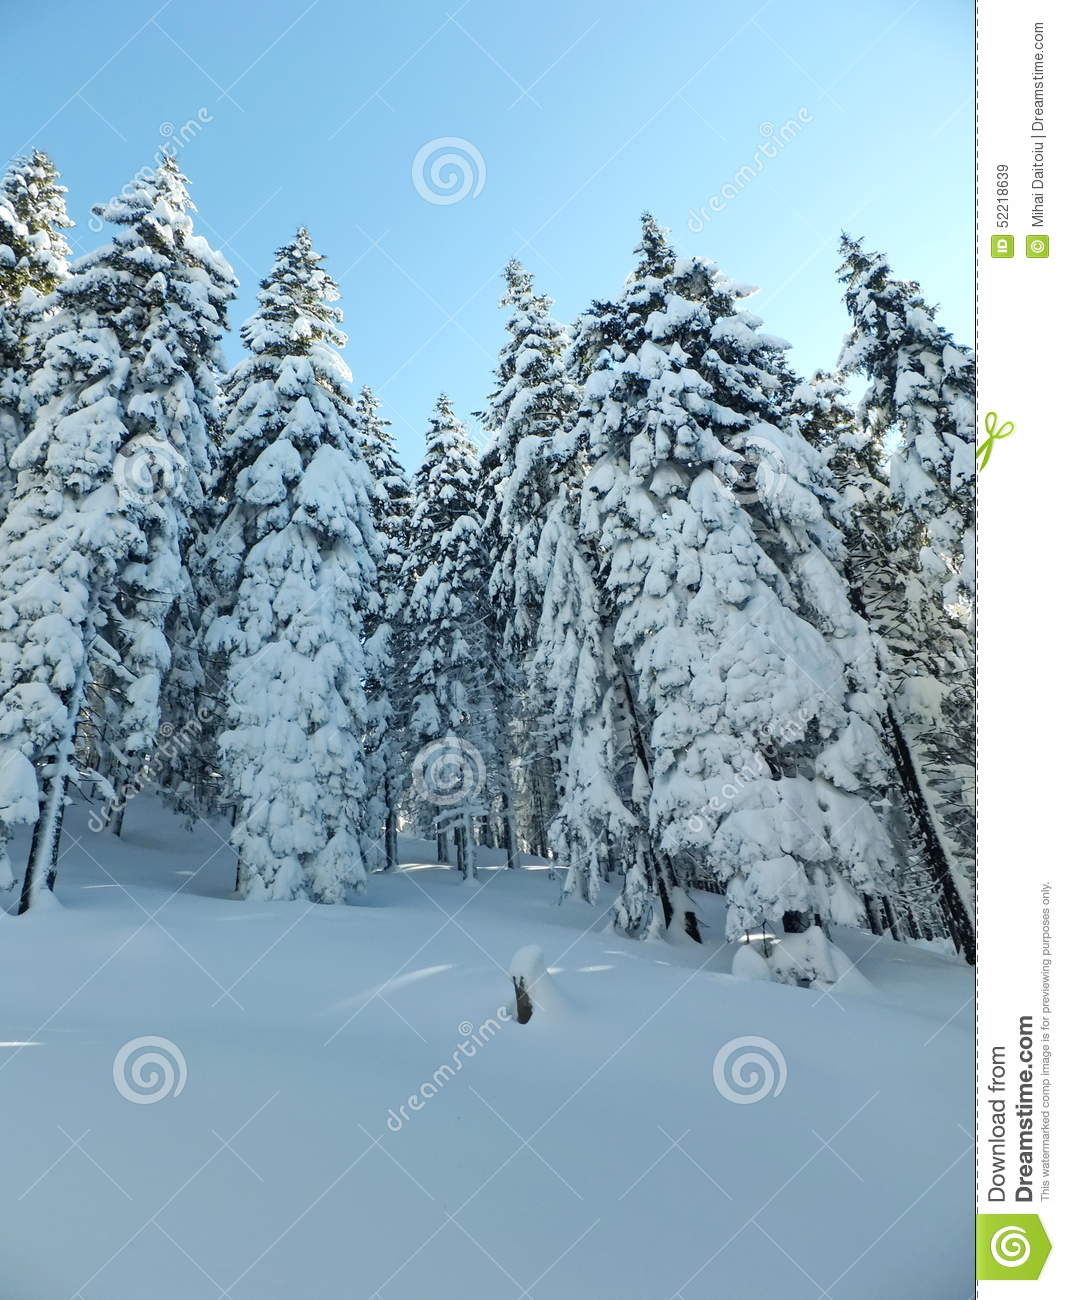 snowy fir trees forest - photo #40